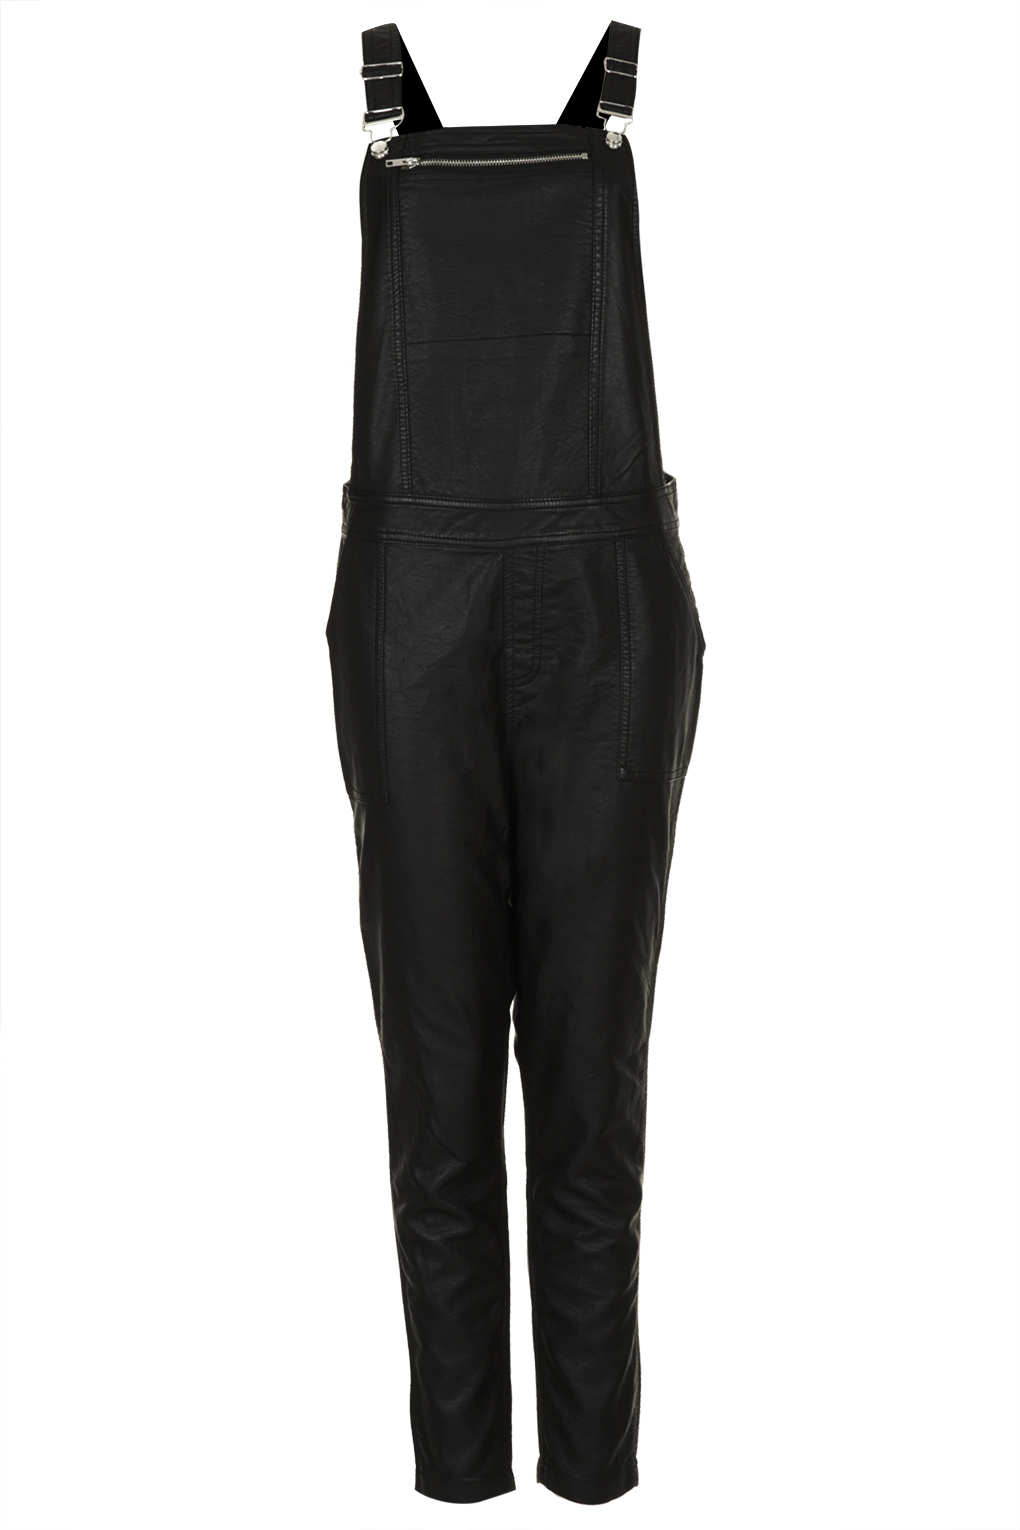 Topshop Leather Look Dungaree in Black | Lyst